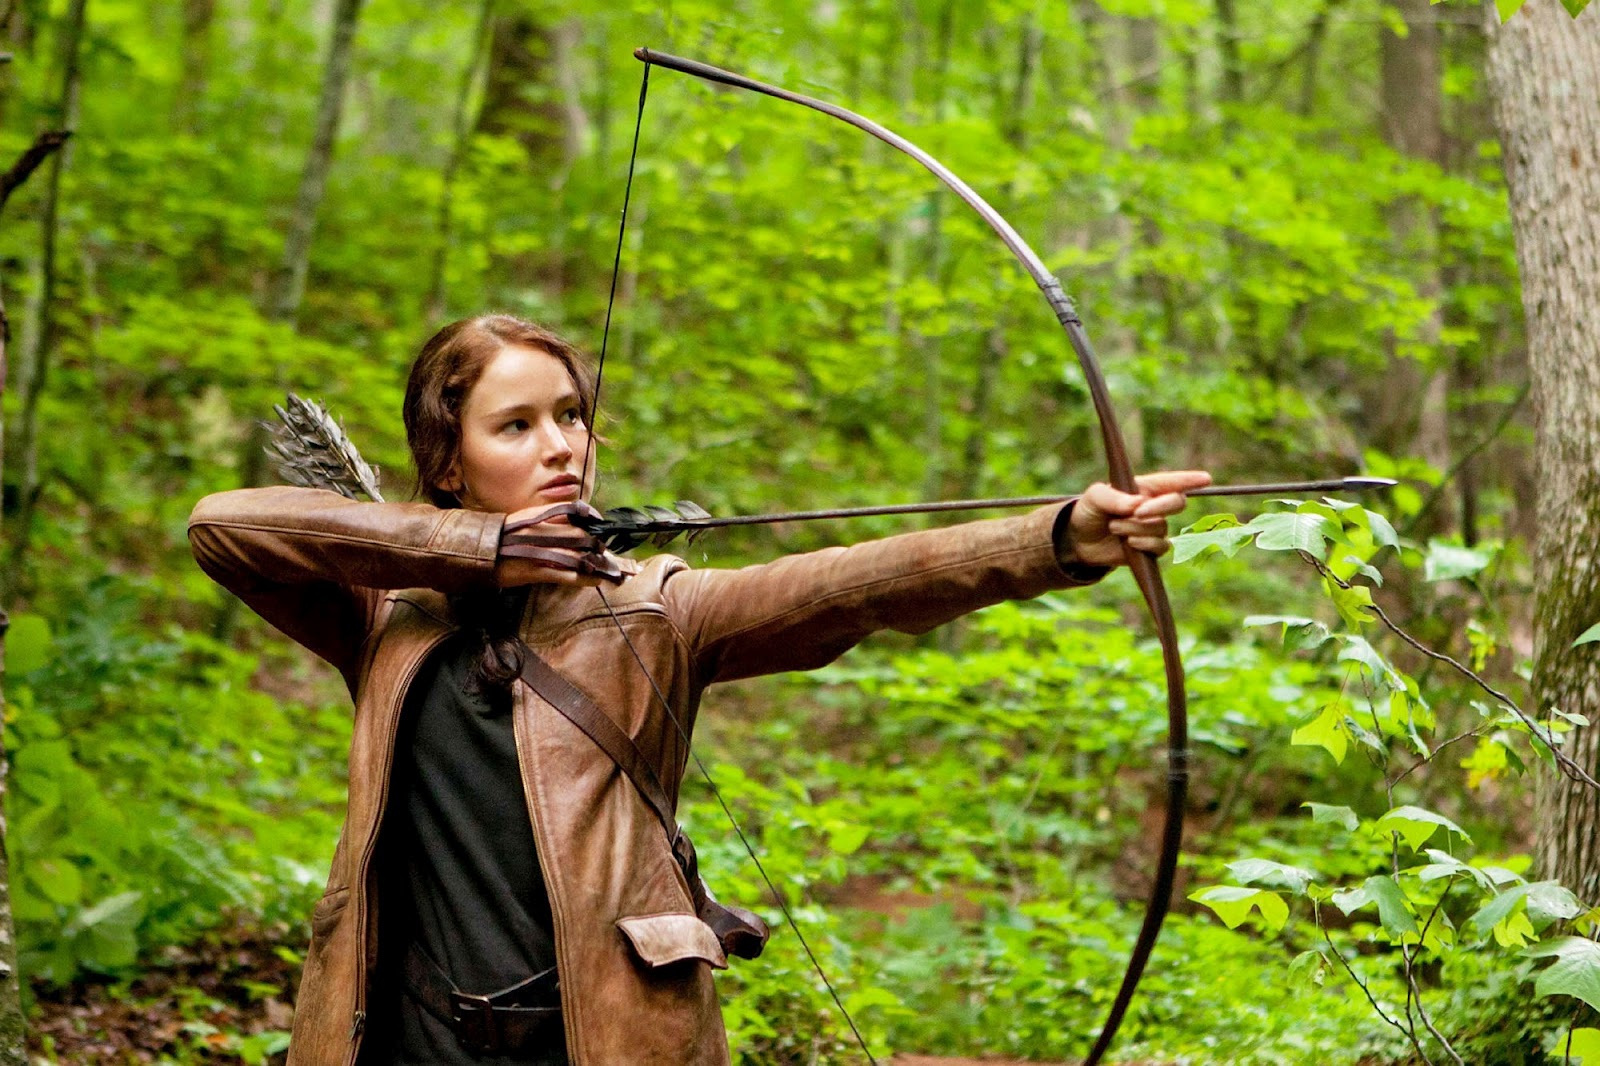 http://3.bp.blogspot.com/-qnYmXOo9c24/T38YyHNpOMI/AAAAAAAADvE/GXSonJE4iyU/s1600/jennifer-lawrence-stars-as-katniss-everdeen-in-the-hunger-games.jpg